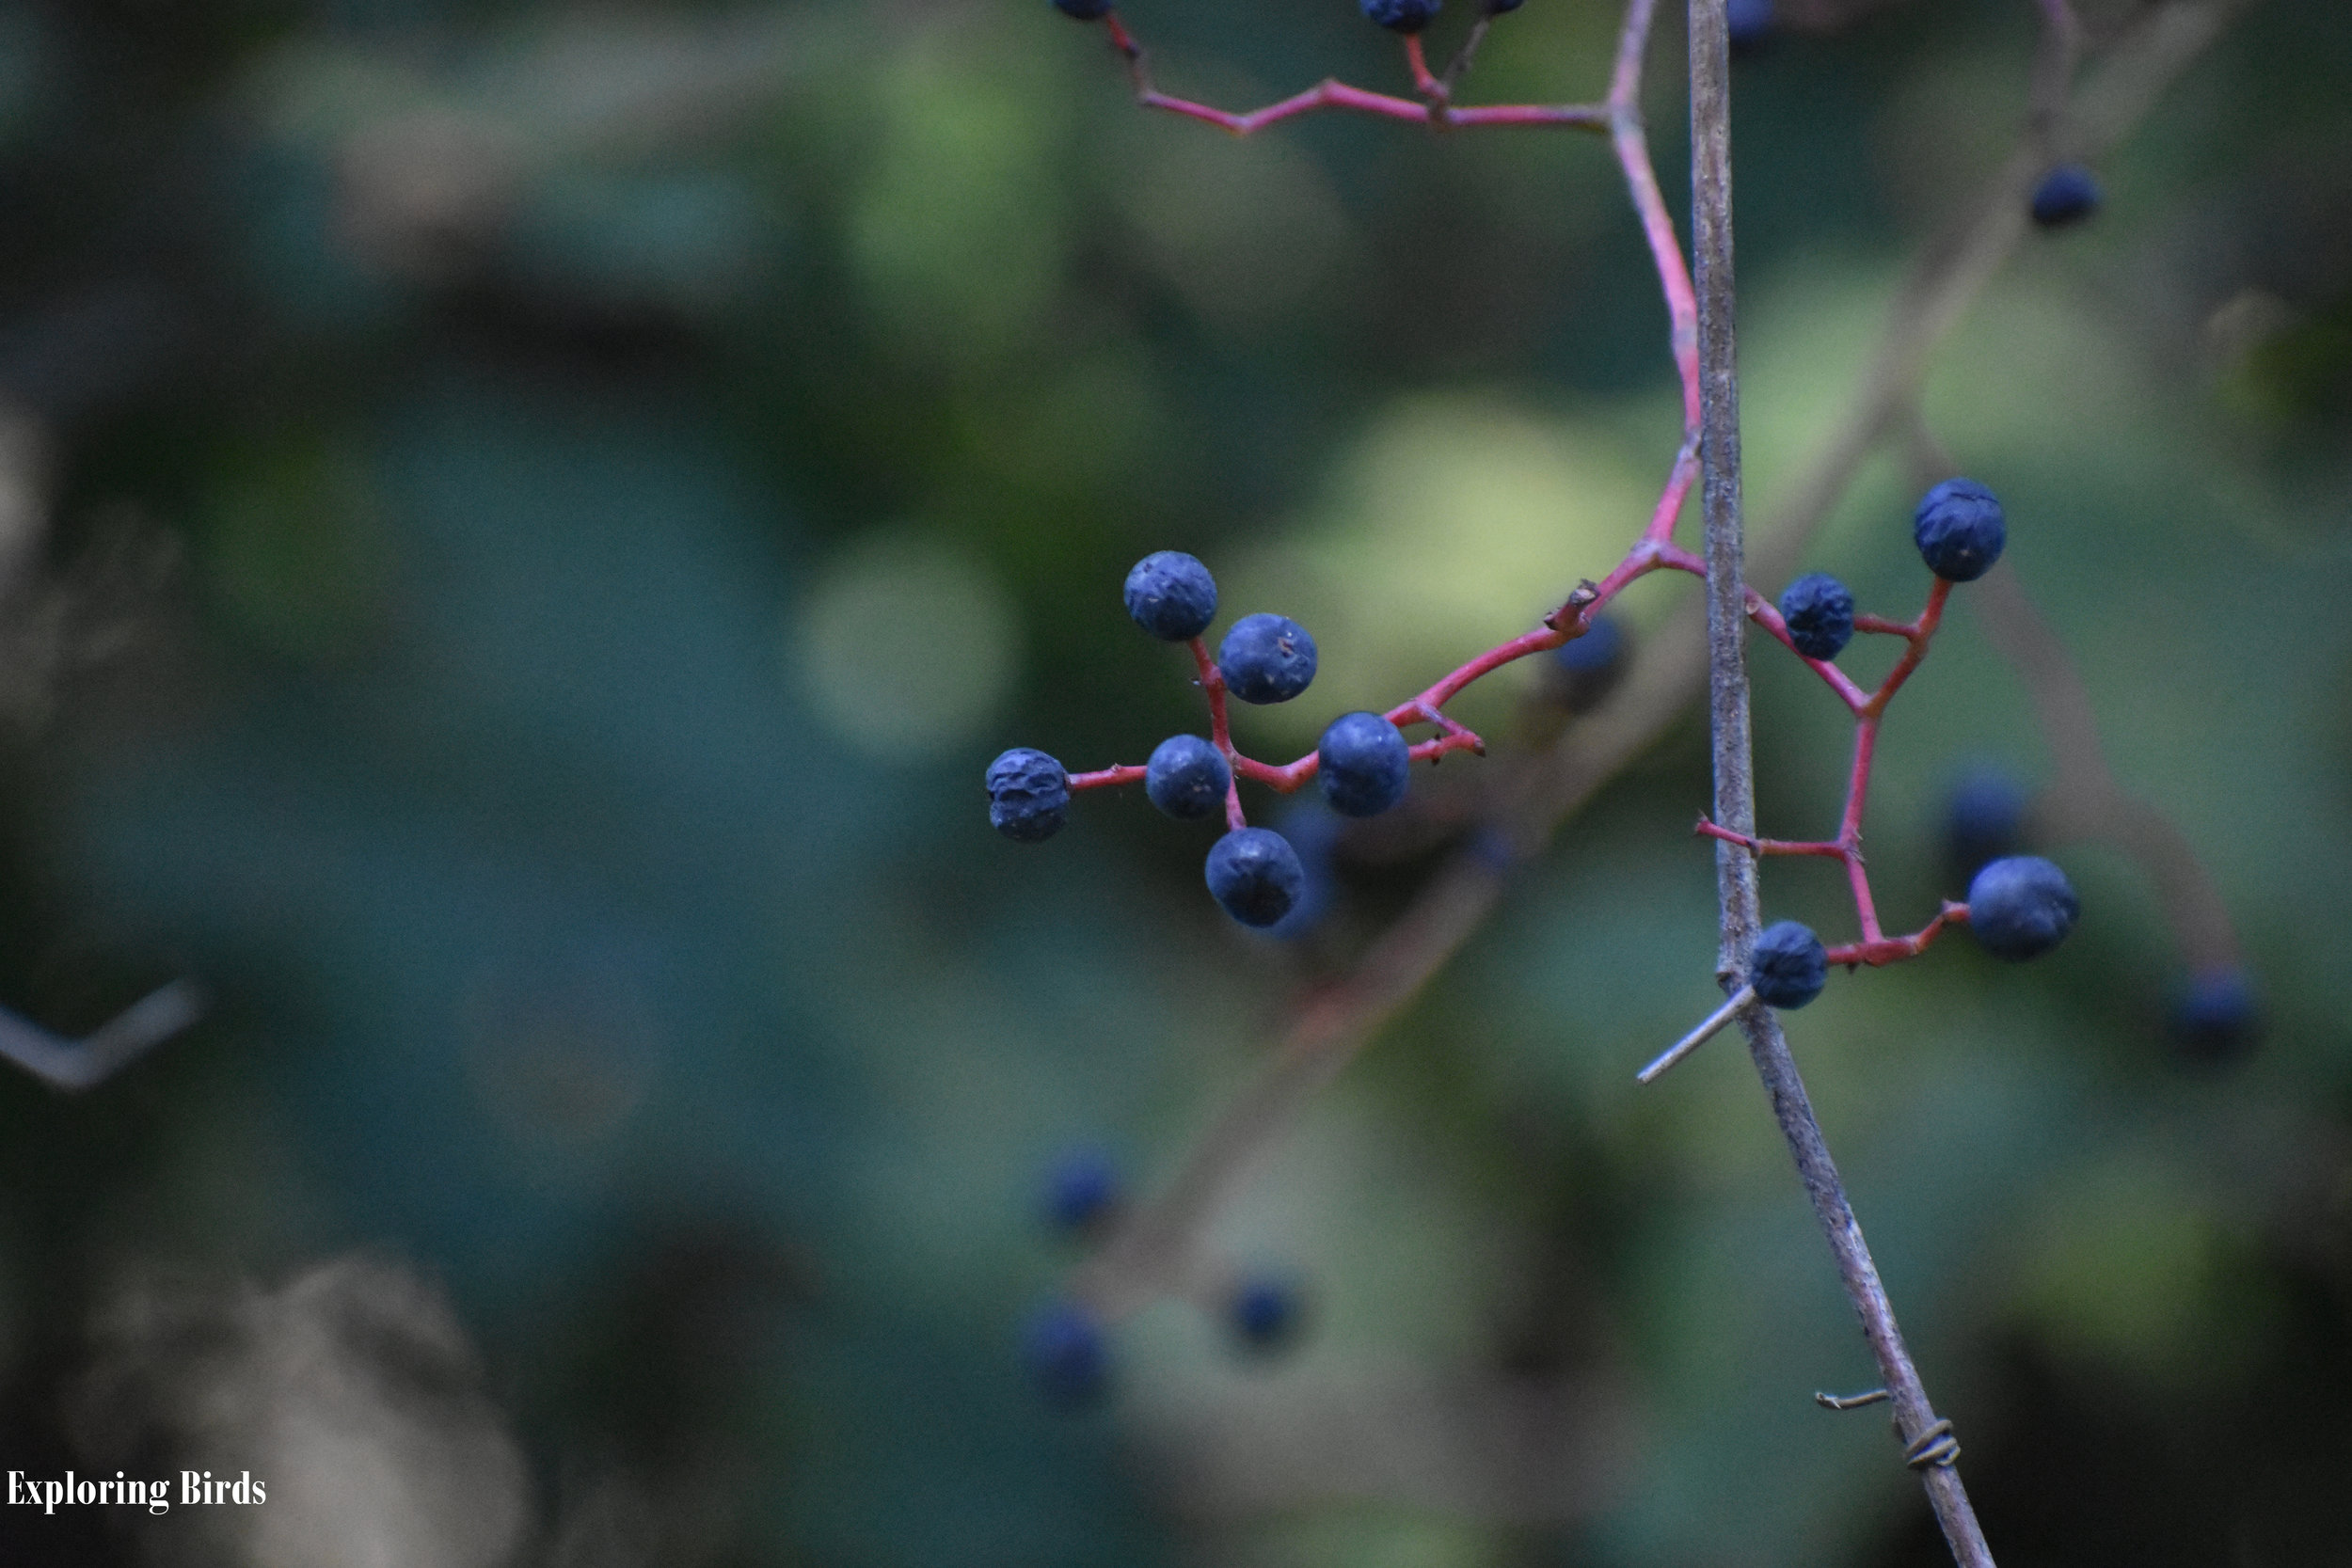 Virginia Creeper is a plant that attracts birds